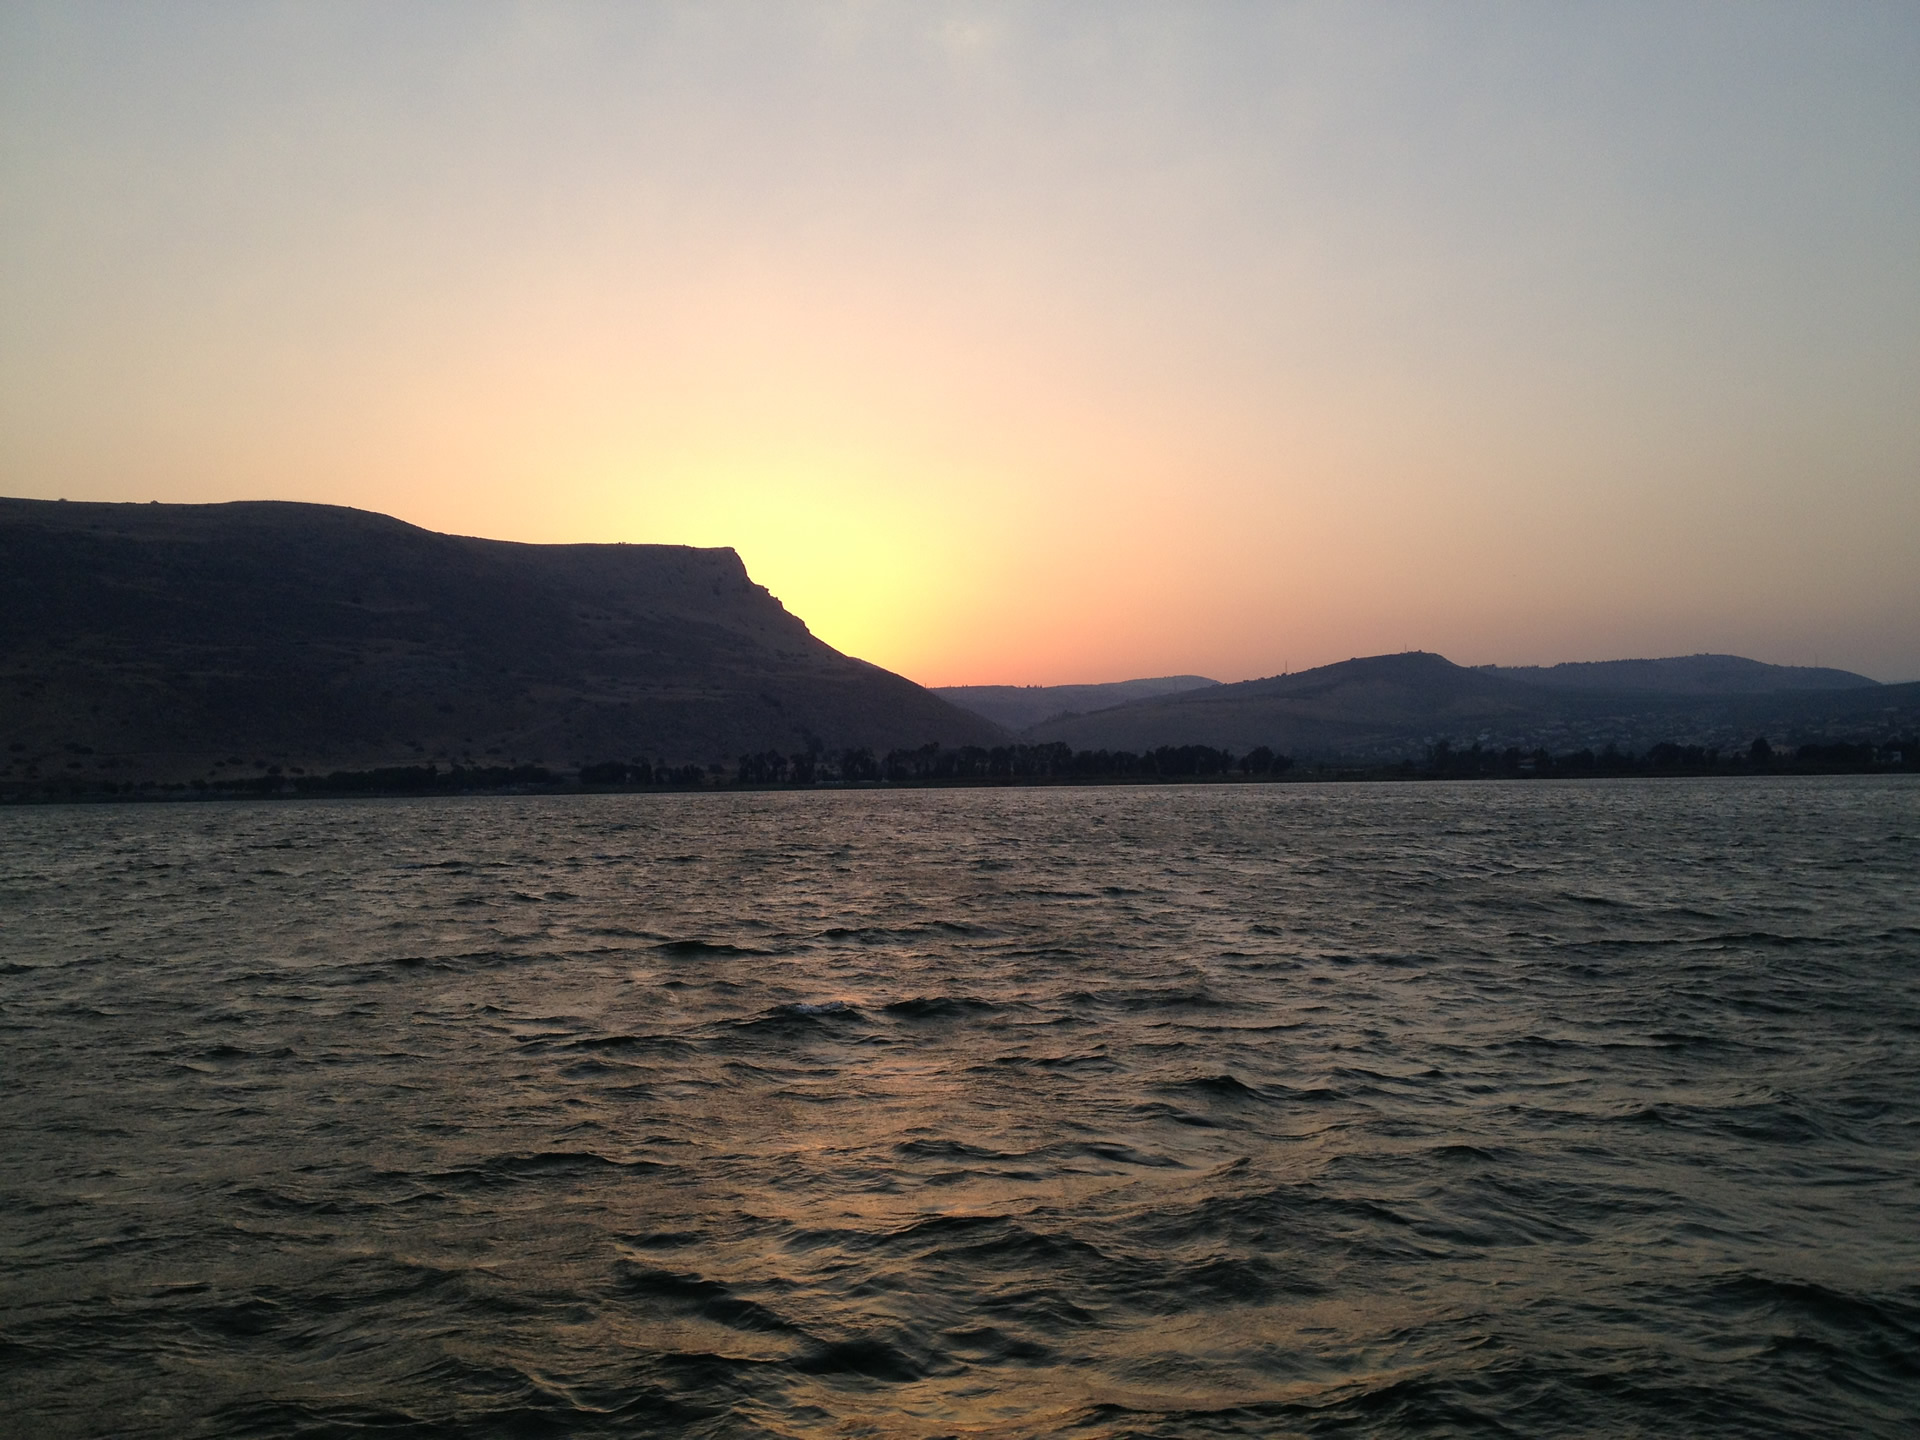 Part 3 - Mt Arbel